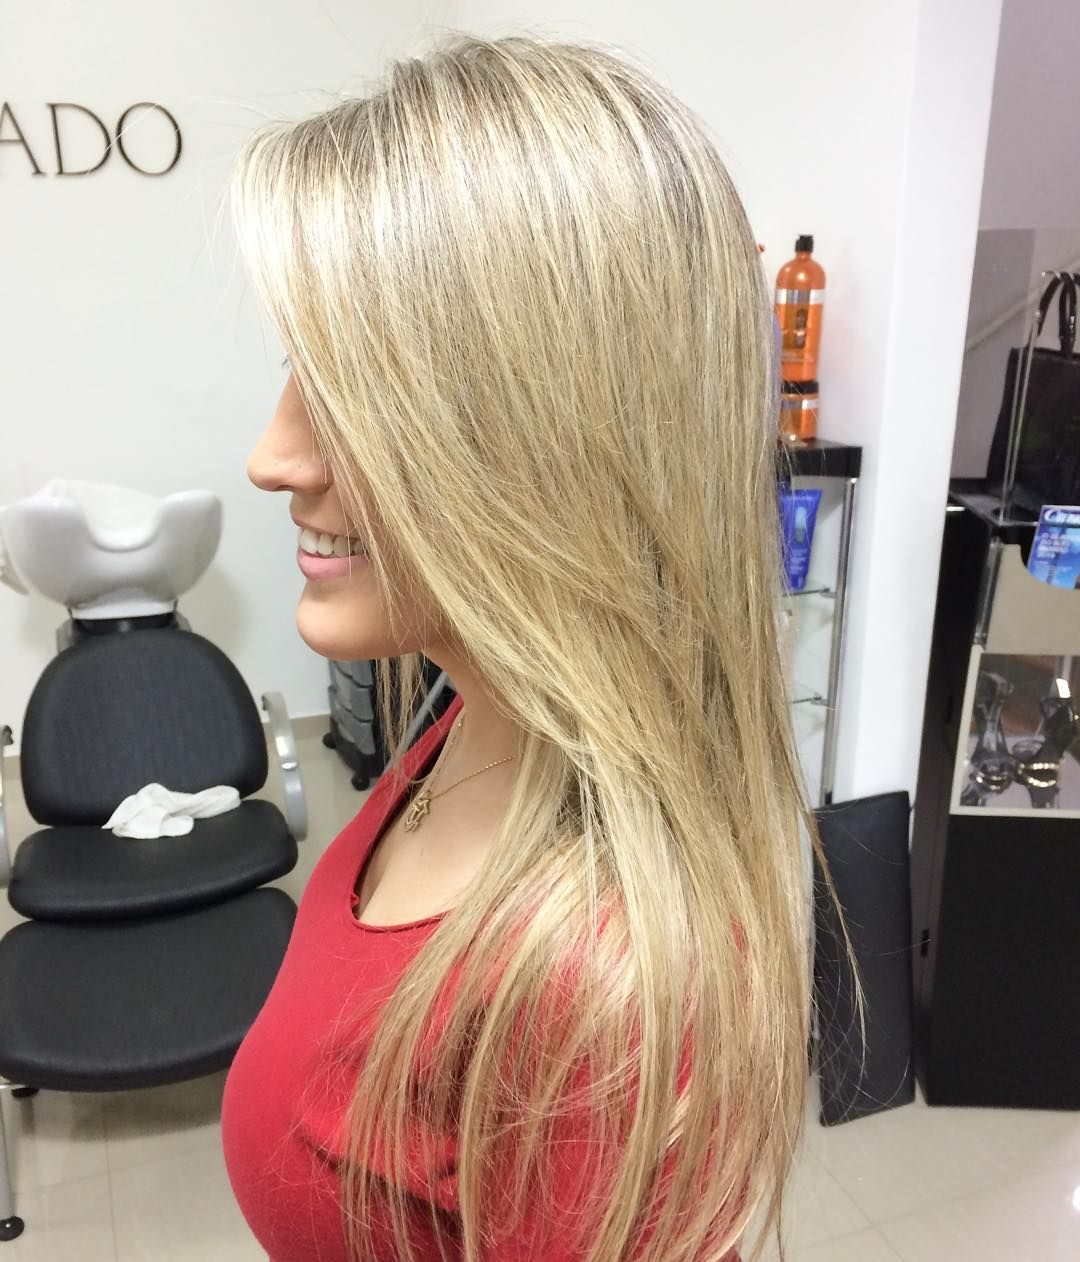 Review!!! #blond #blondhair #loiras #loiros #loirissimo #loirosdivos #hair #hairtrends #cabelo #cabelodossonhos by jeffersonfonsecamakeup_hair